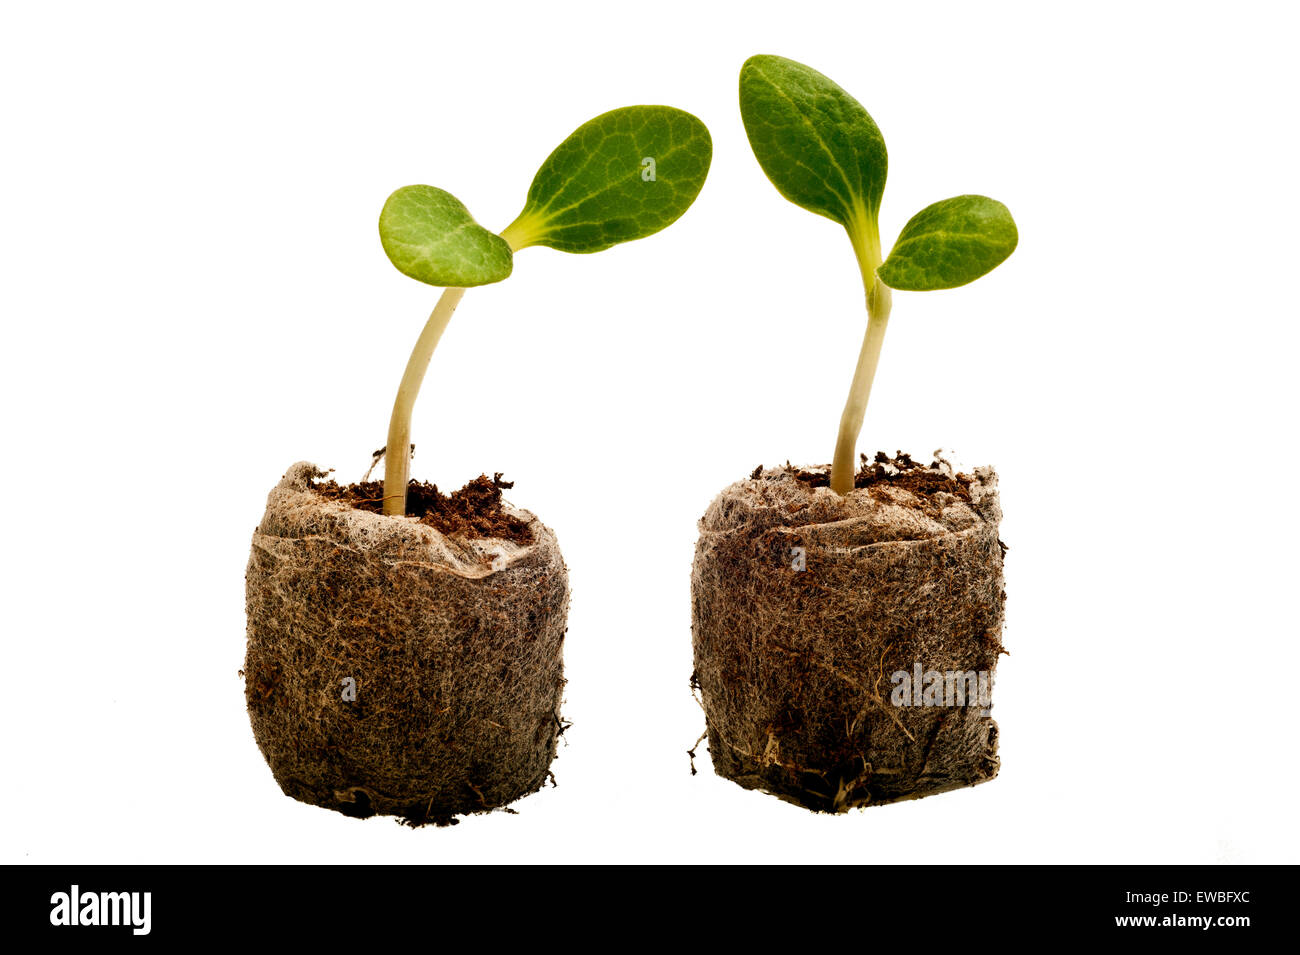 New lives two sprouts isolated on white background - Stock Image